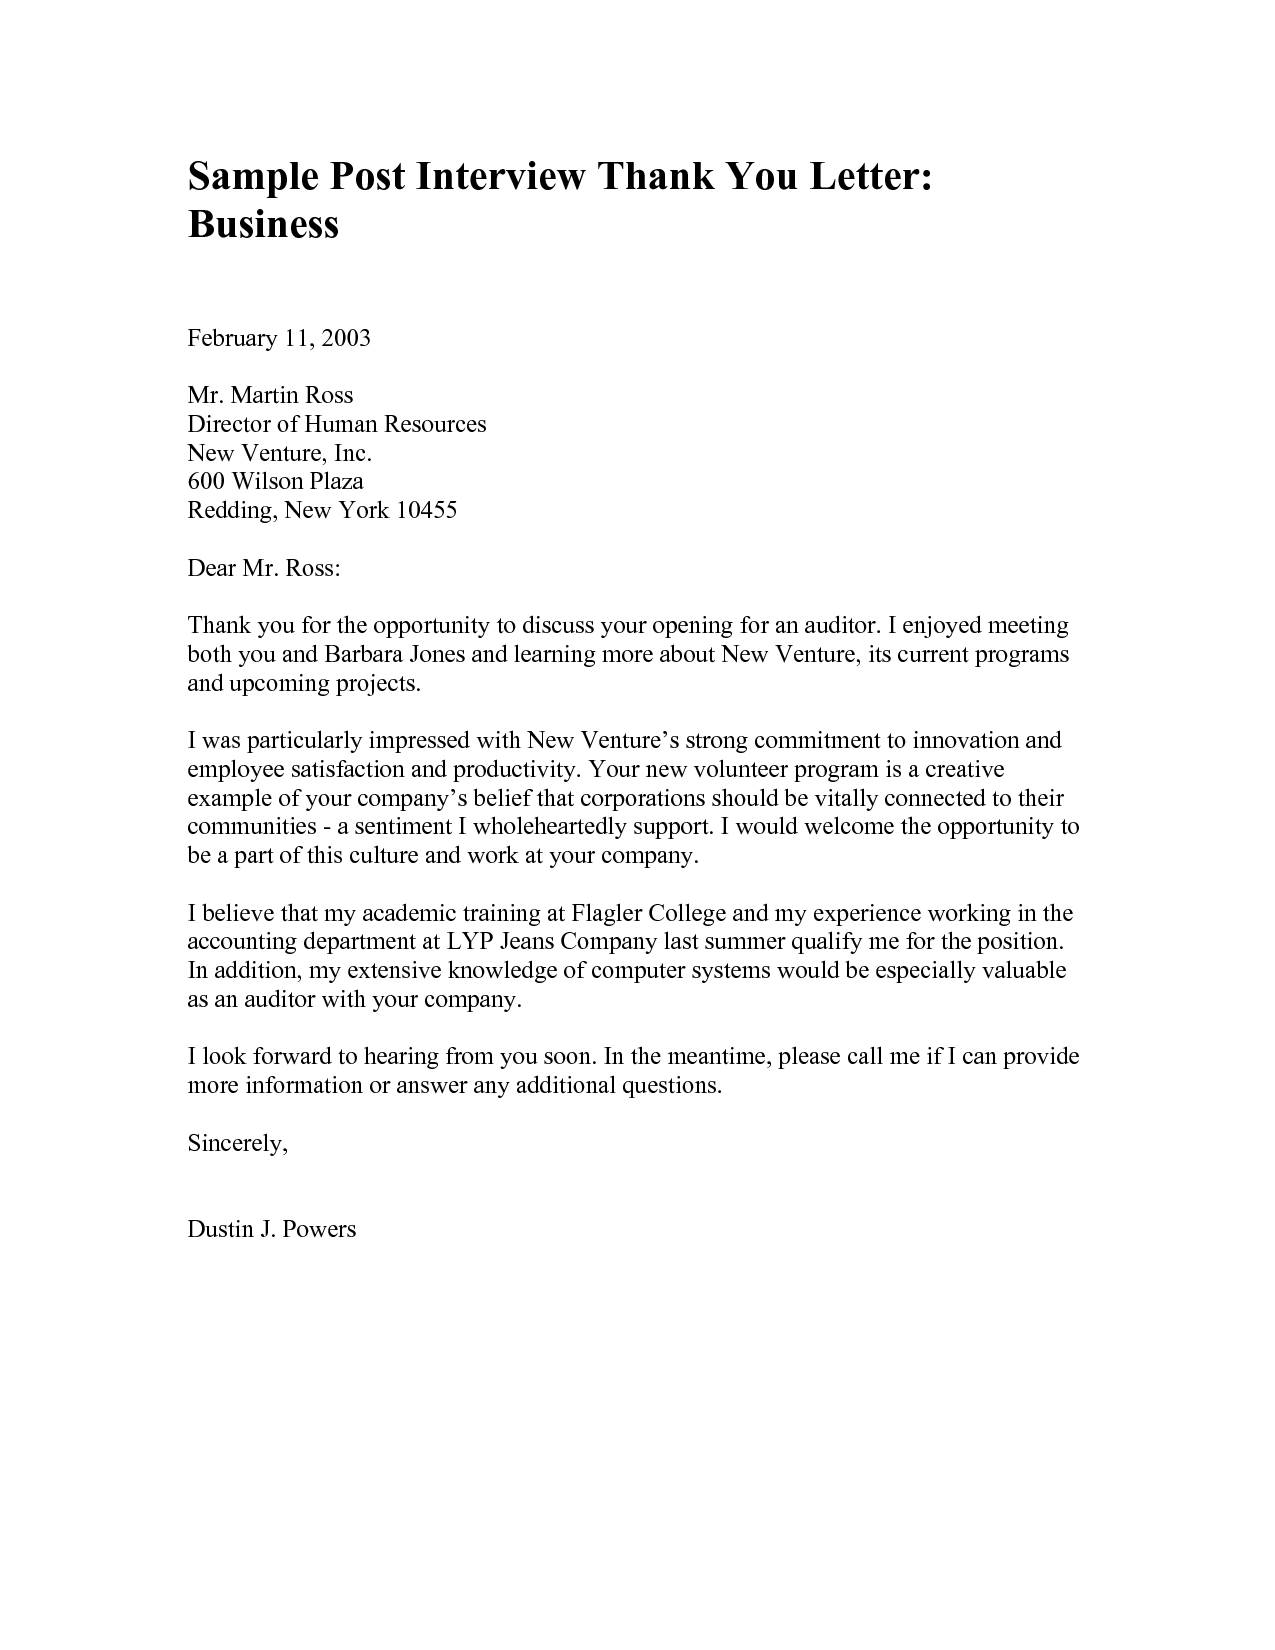 thank you letter from business to customer Boat.jeremyeaton.co